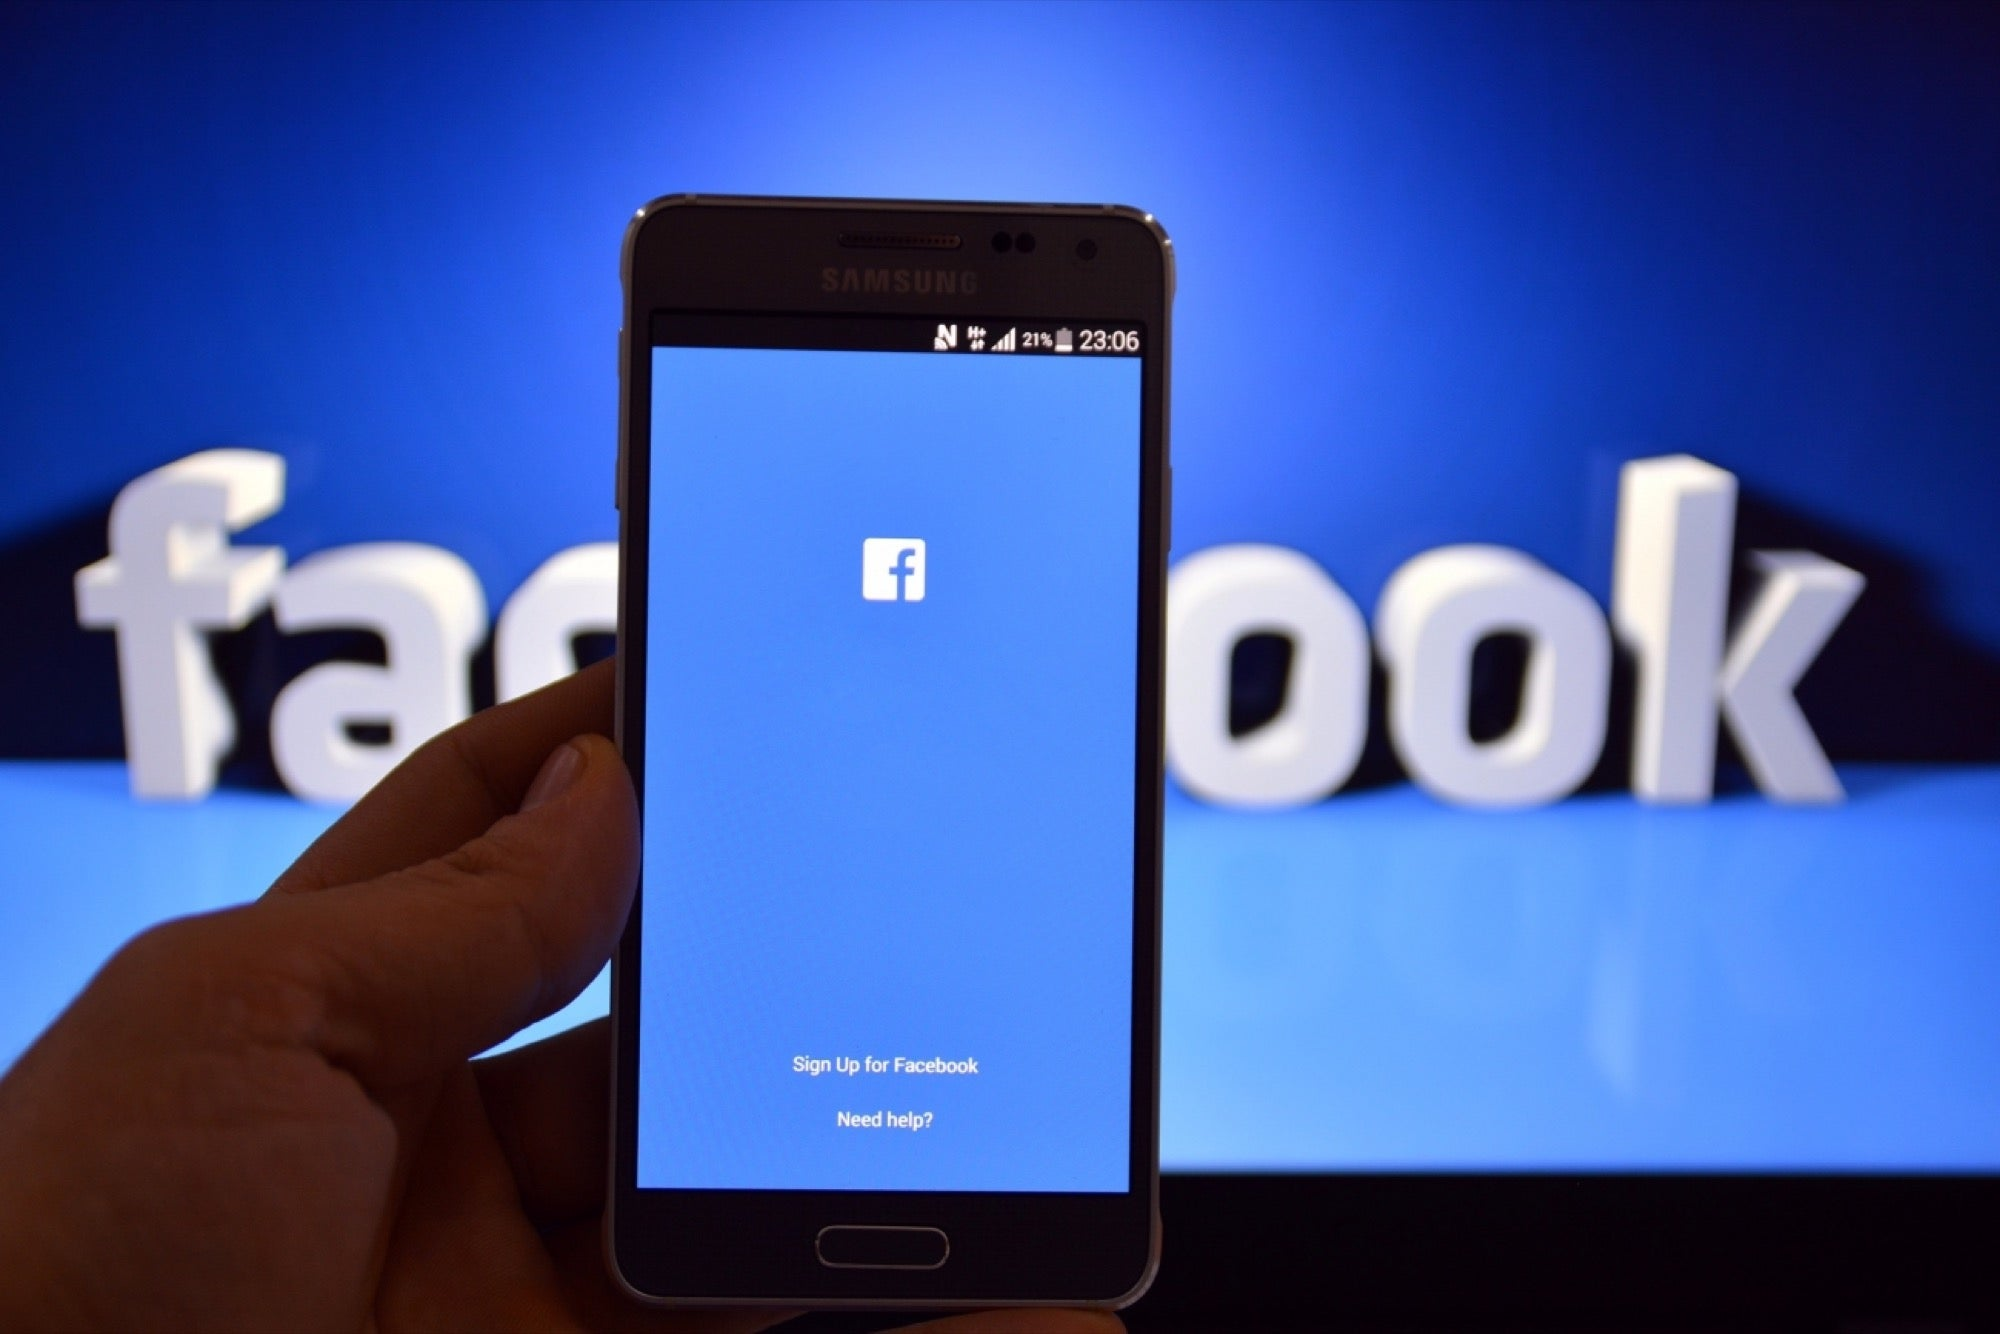 What Facebook Latest Features Will Bring For A Business?